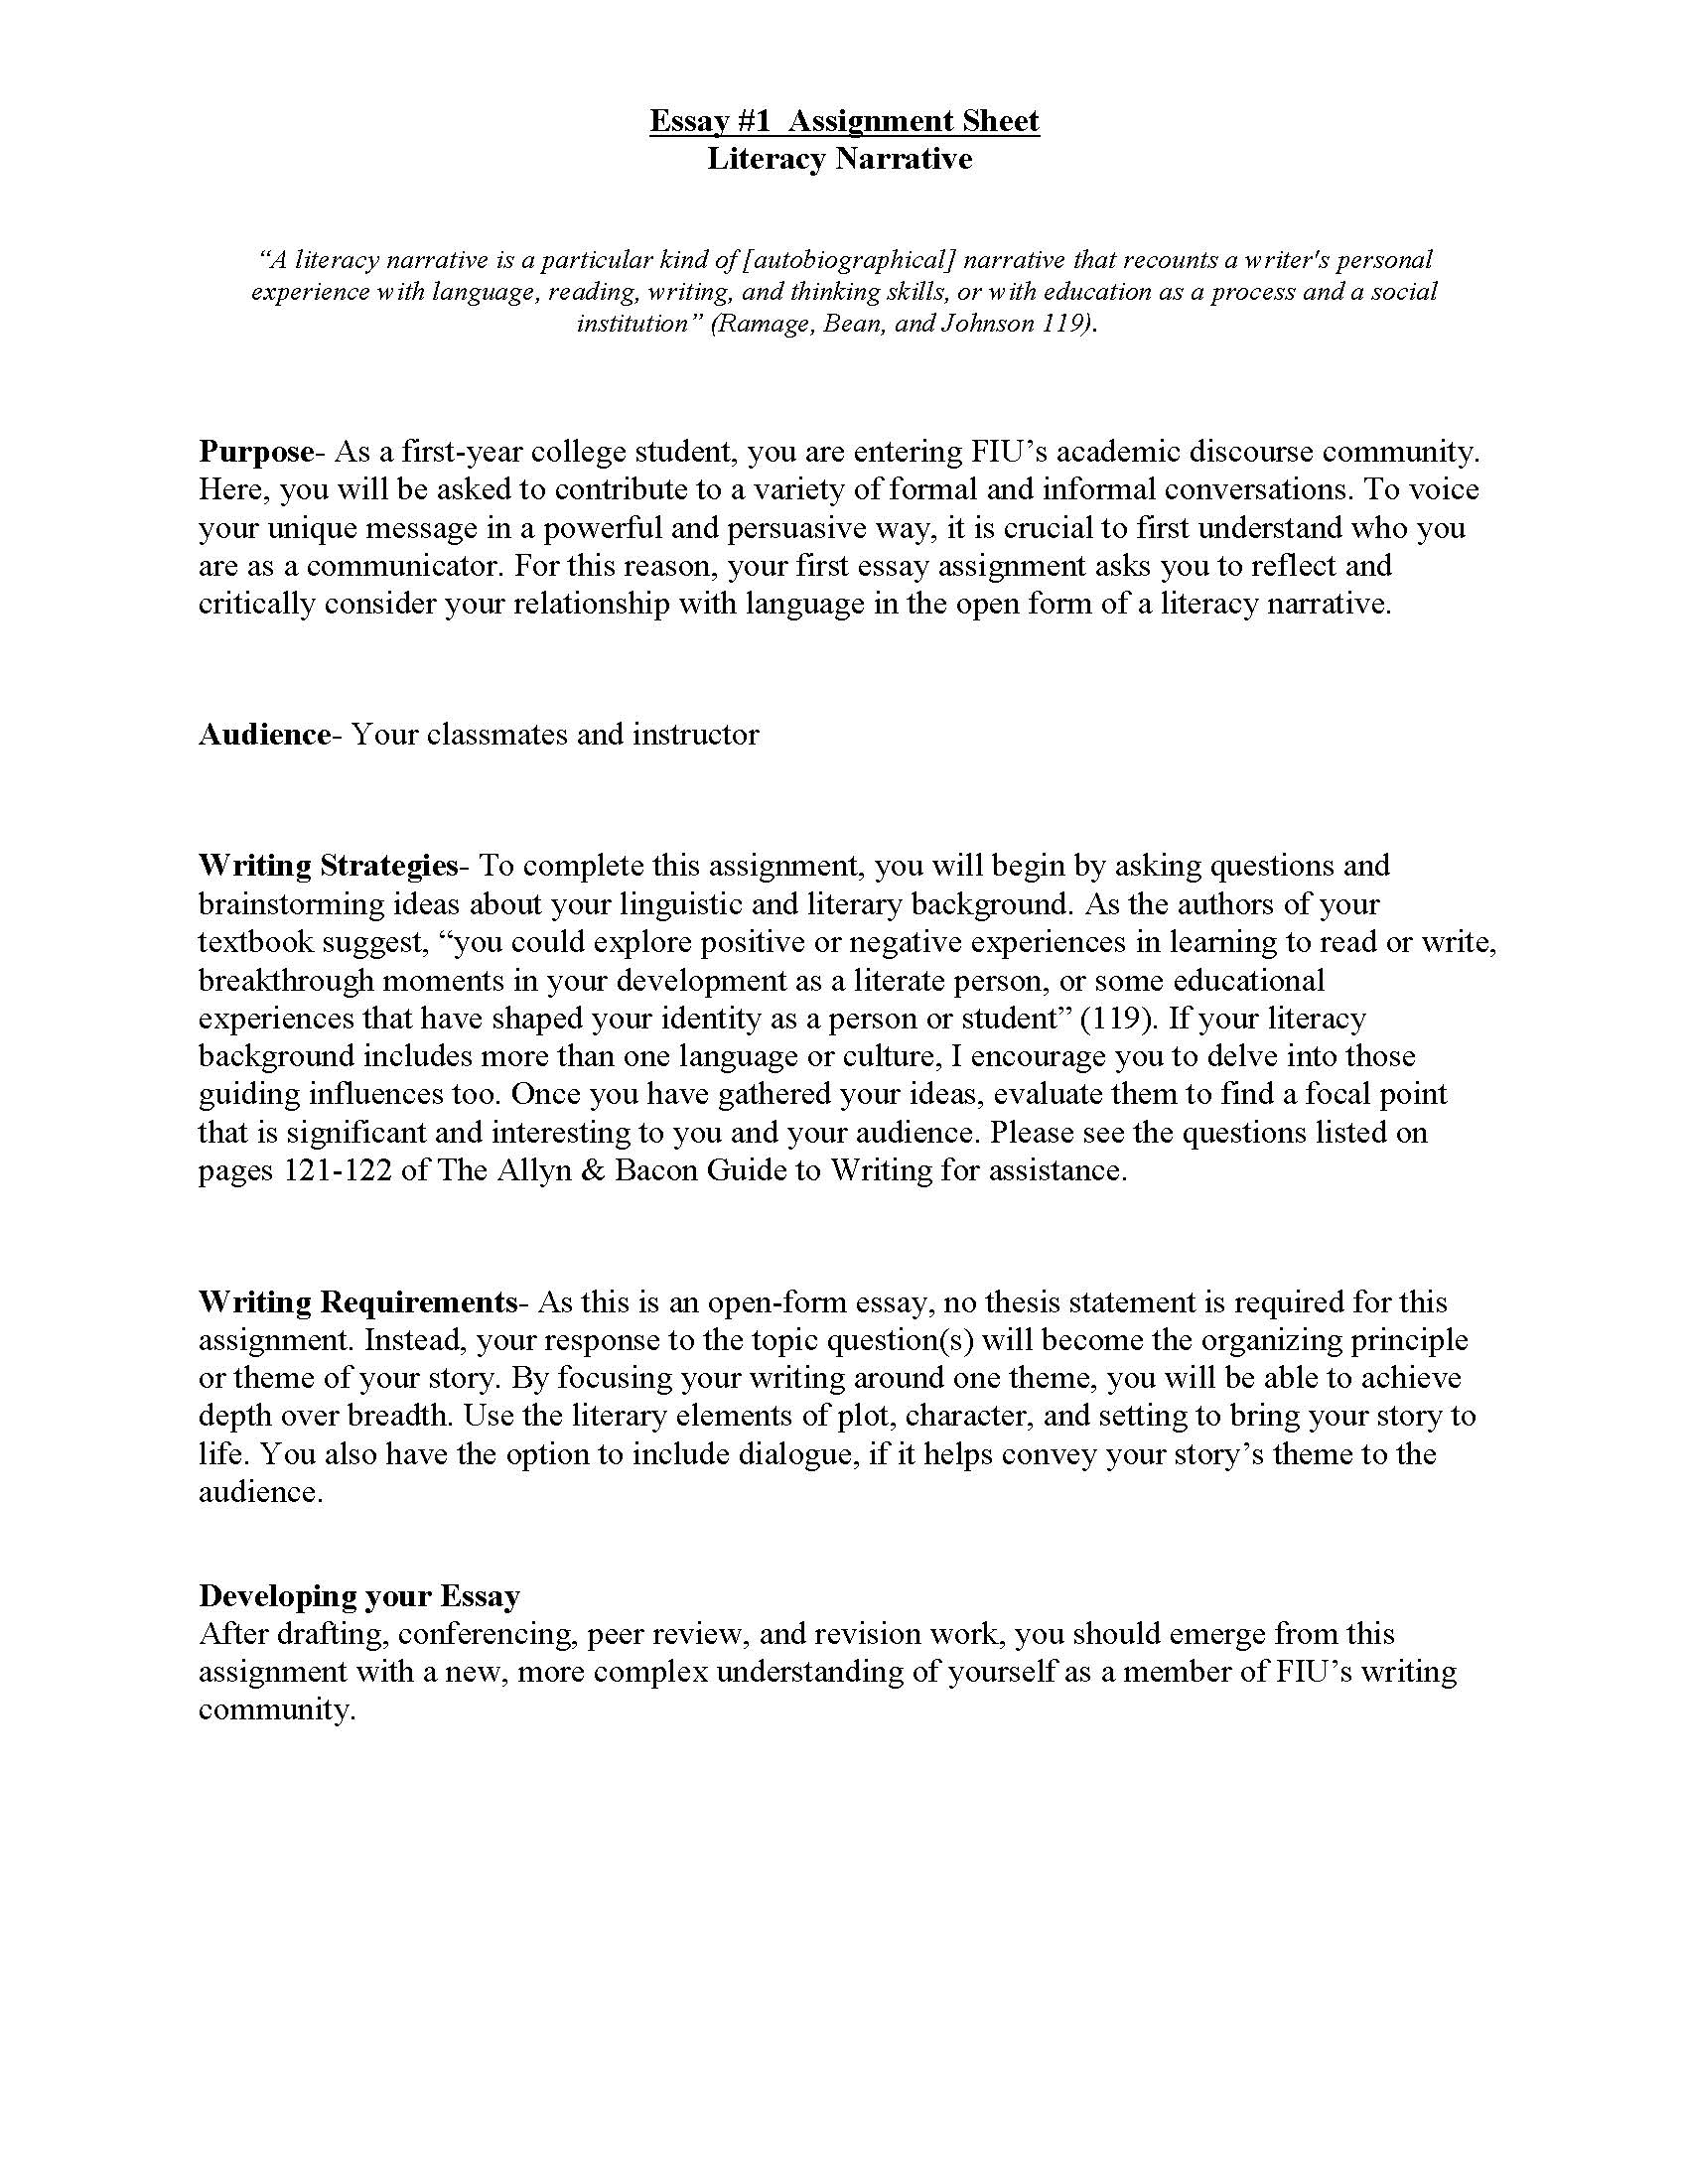 020 Essay Example Literacy Narrative Unit Assignment Spring 2012 Page 1 Fascinating Define Definition Of Writing Personal Narrative/descriptive Full